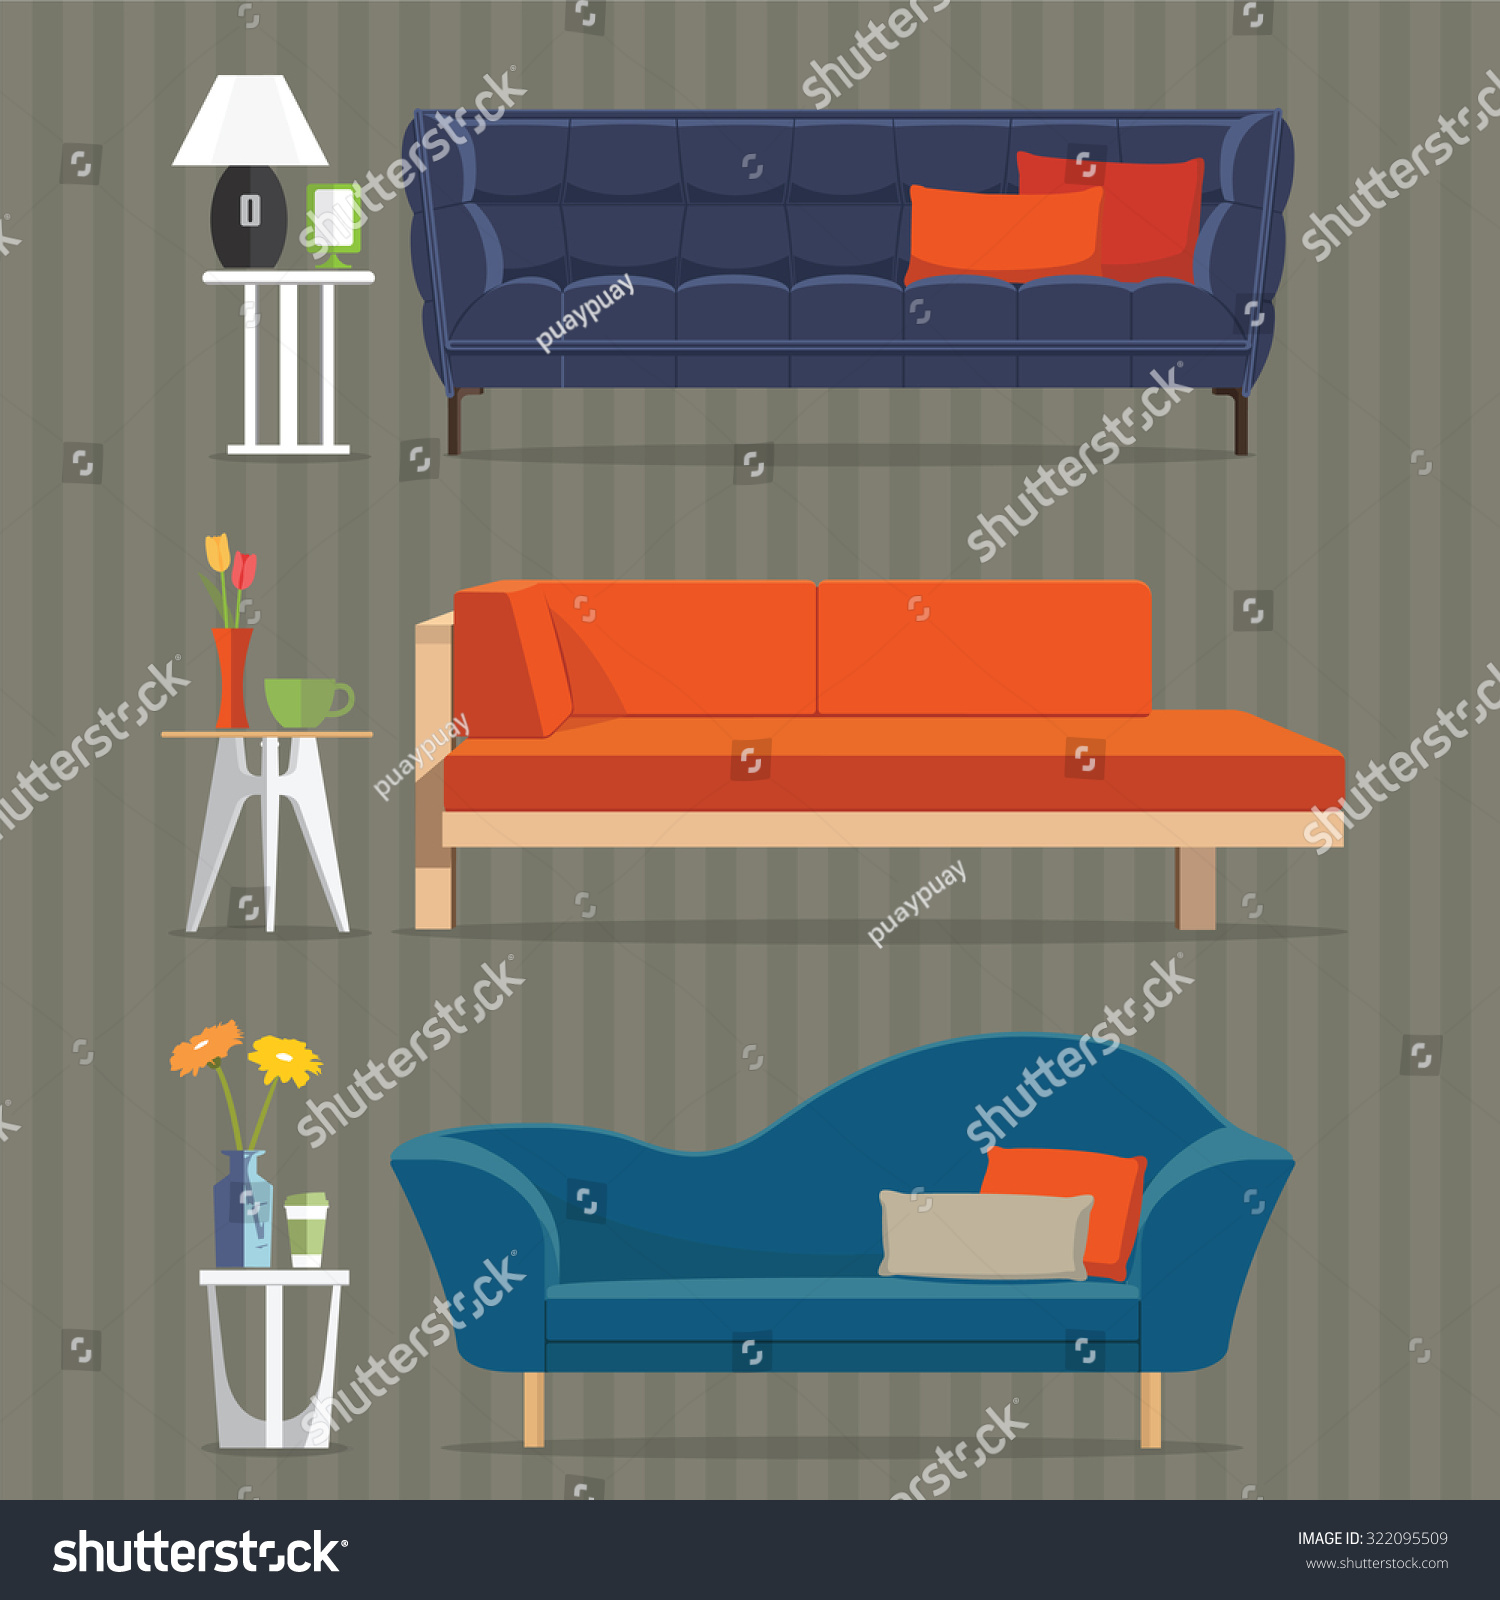 Design Concepts Furniture office design concepts office design concept idea office furniture and design concepts prepossessing ideas pleasant office office design concepts Living Room Furniture Design Concept Set With Modern Home Interior Elements Isolated Vector Illustration